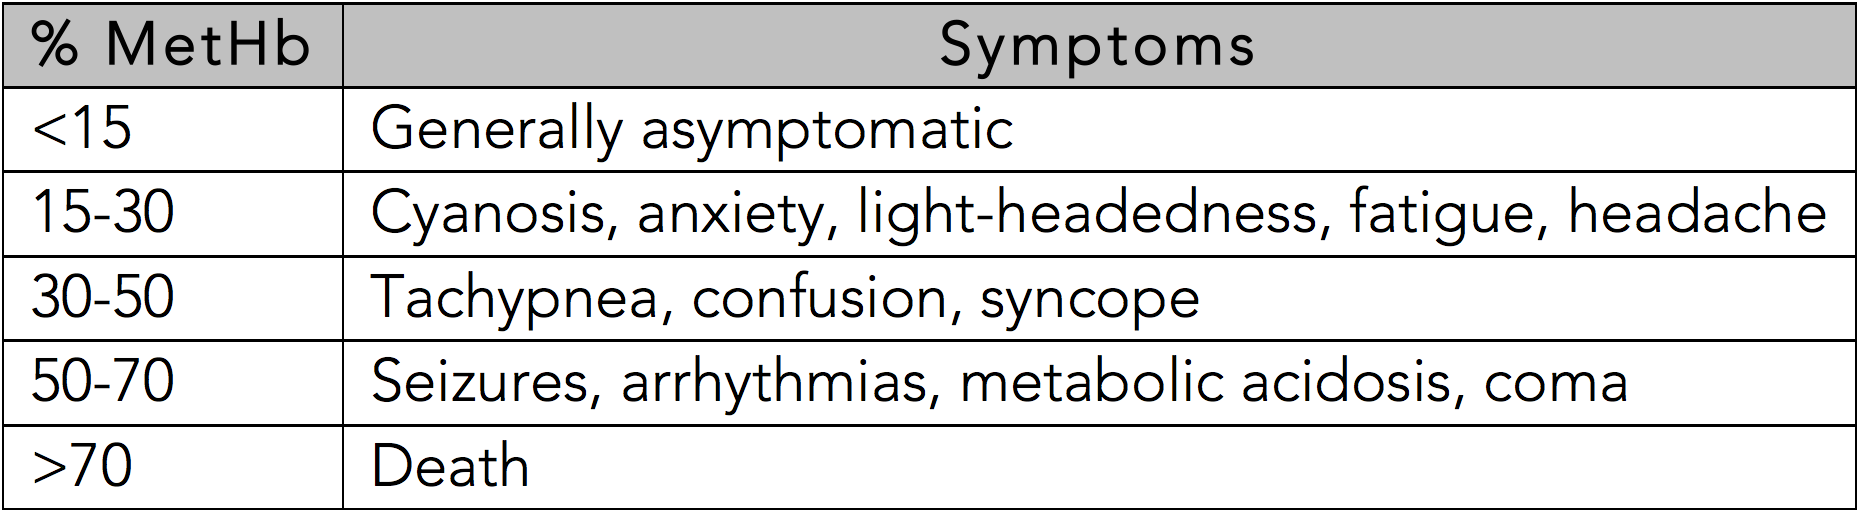 Table 1: Symptoms Based on Methemoglobin Level